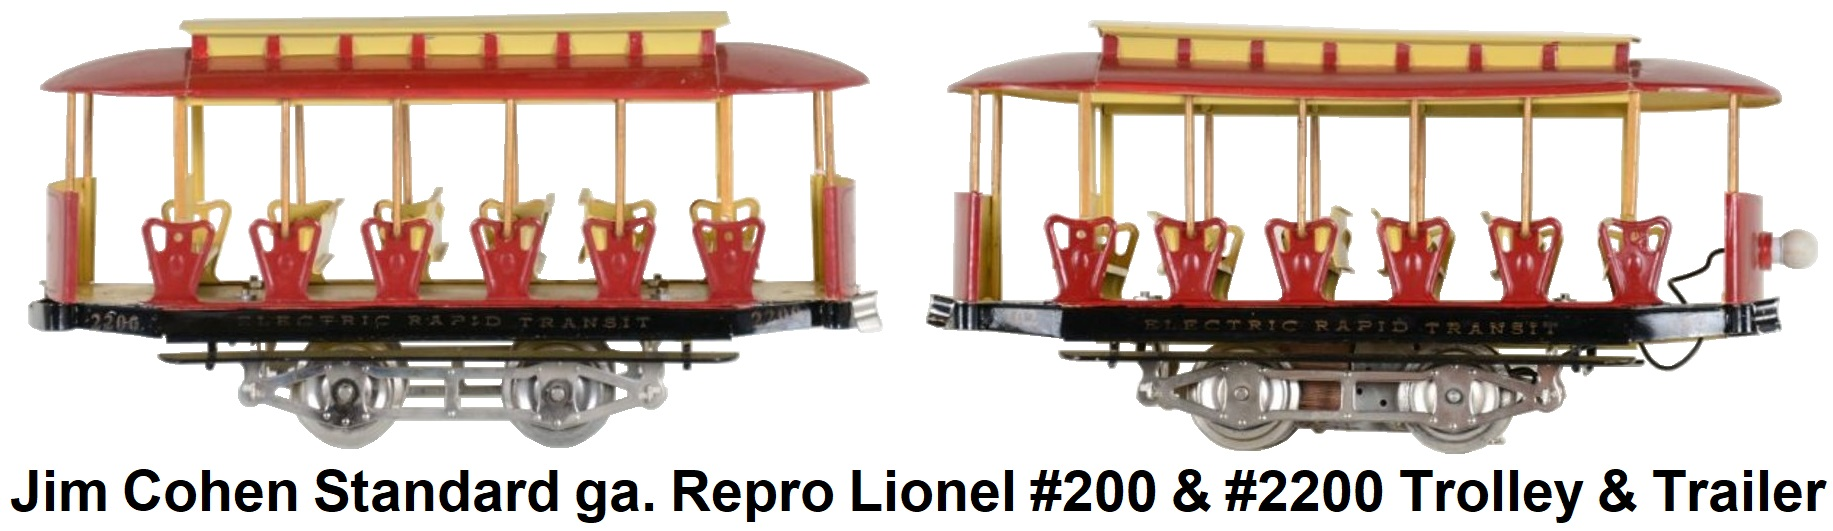 Jim Cohen Standard gauge reproduction Lionel #200 & #2200 Open Air Trolley & Trailer